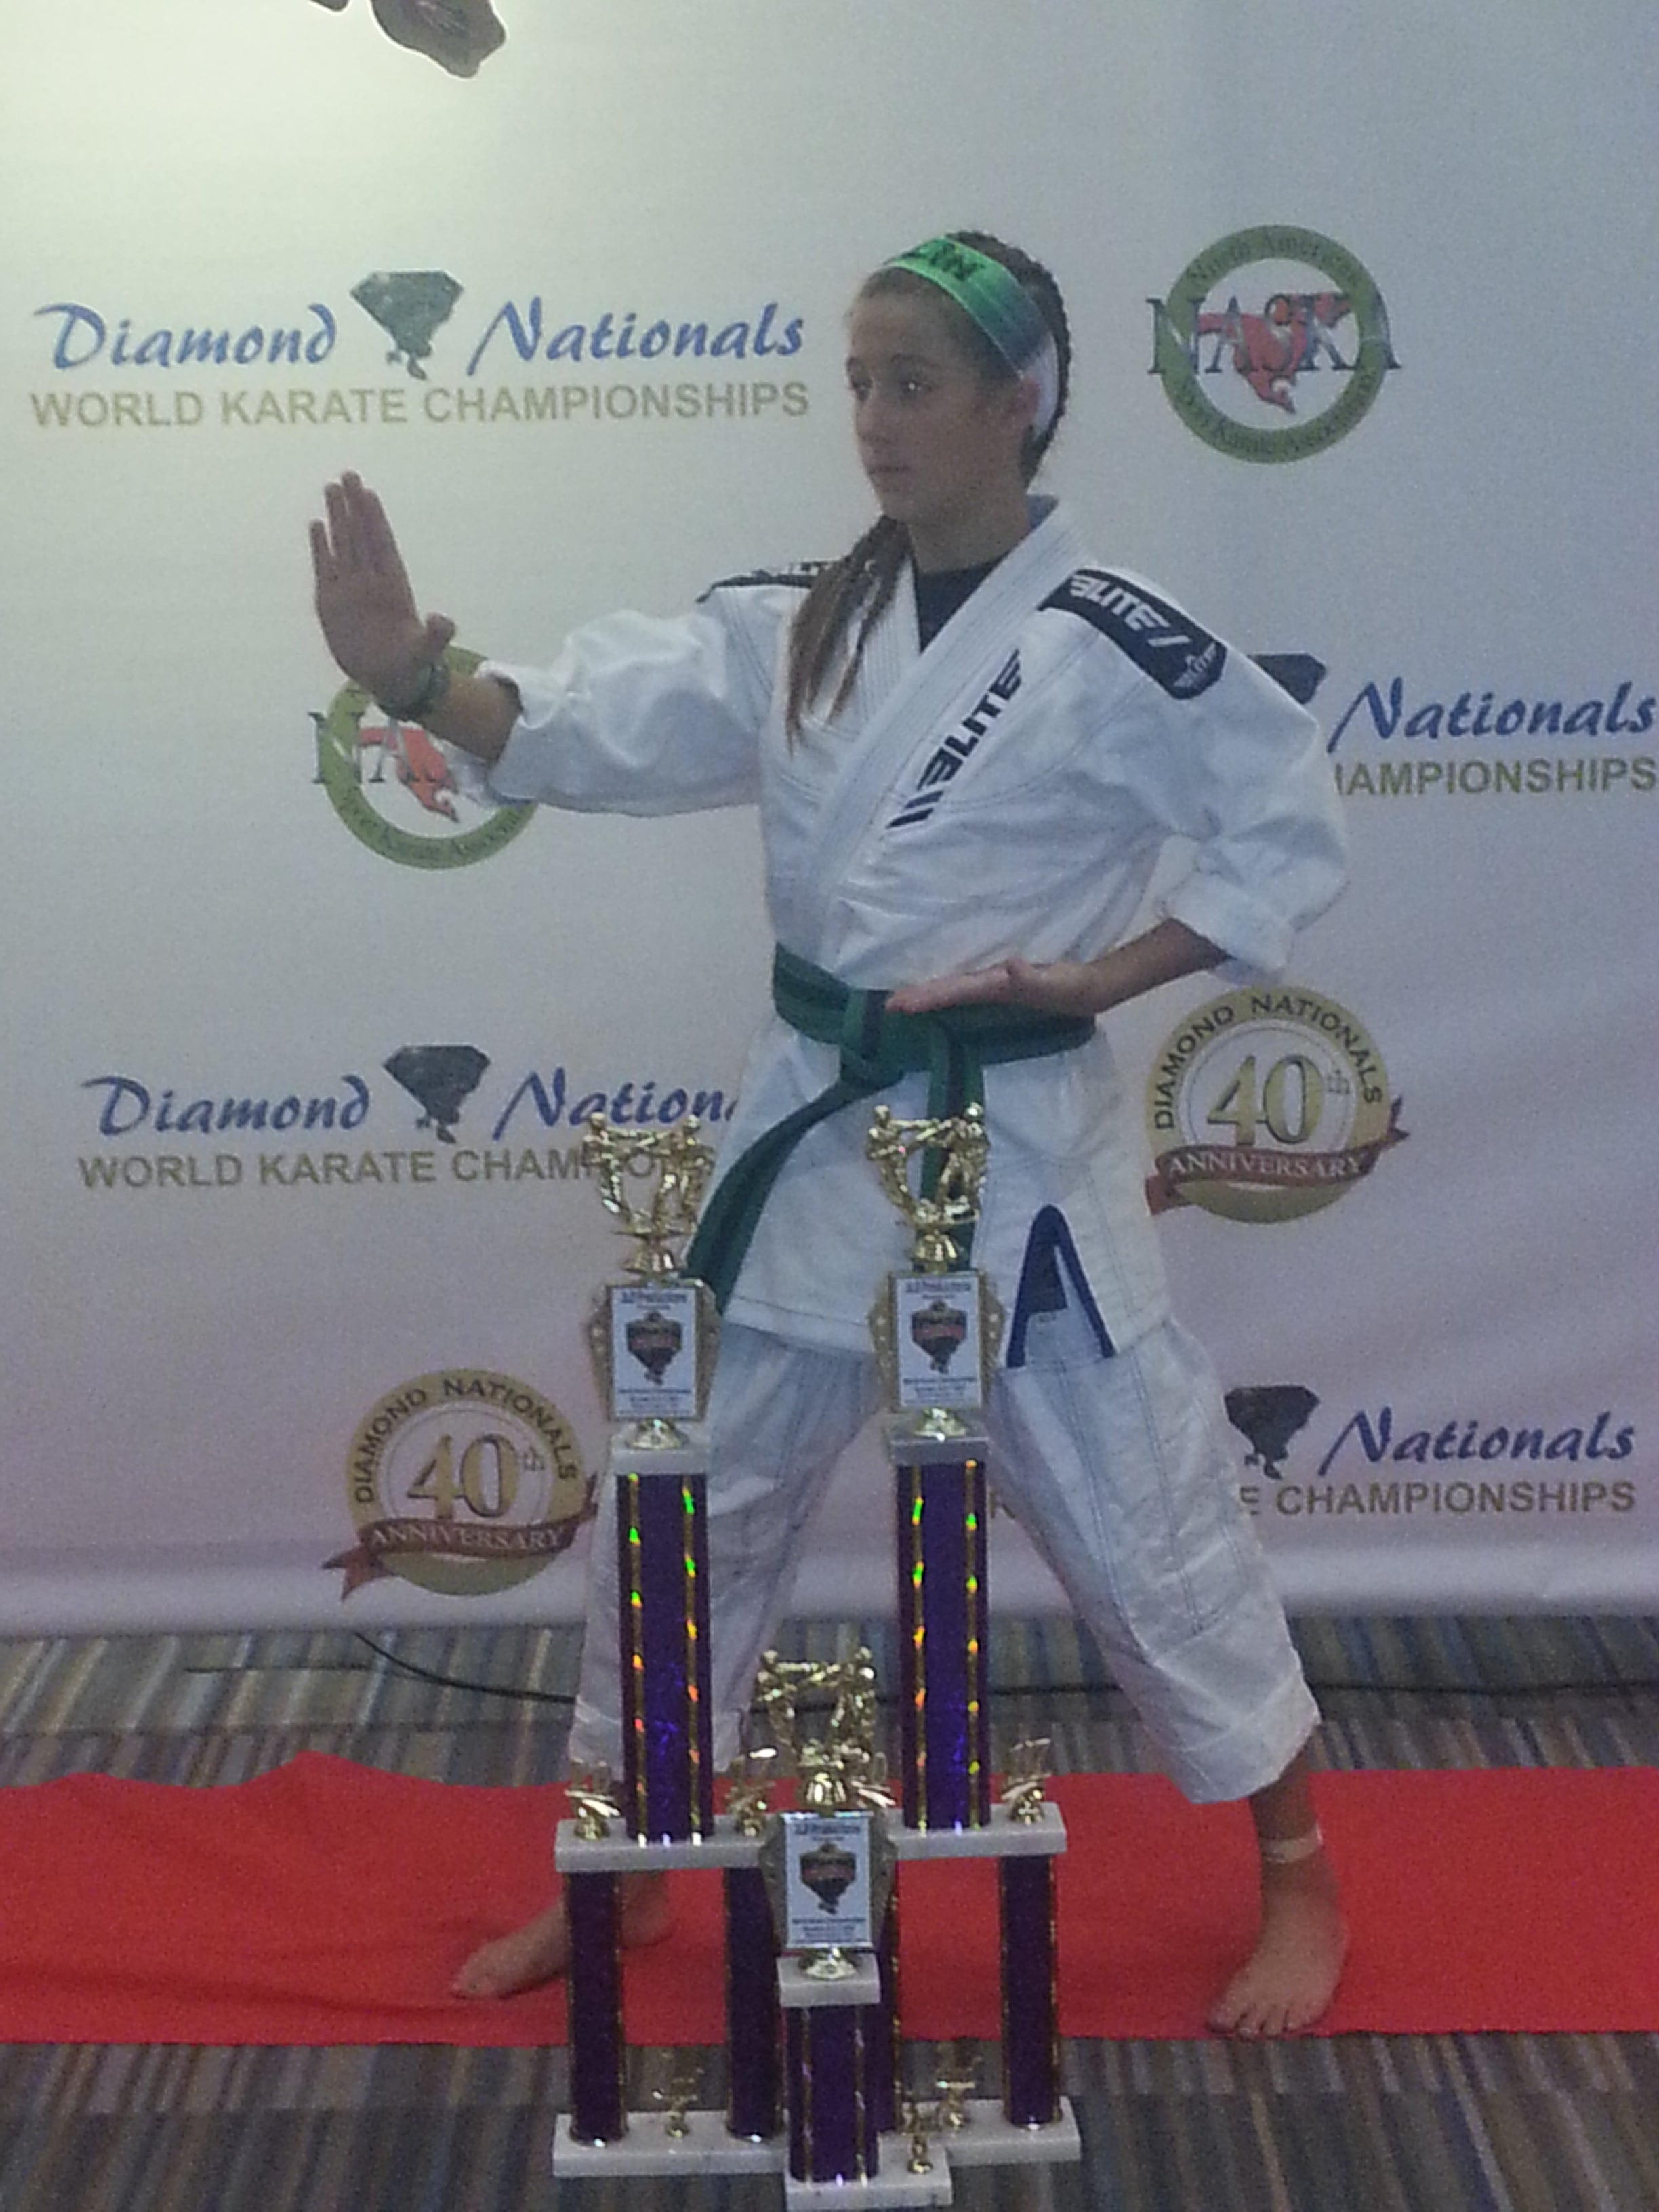 Elite sports Team Elite JUDO Taylin Elizabeth Oberly image4.jpeg